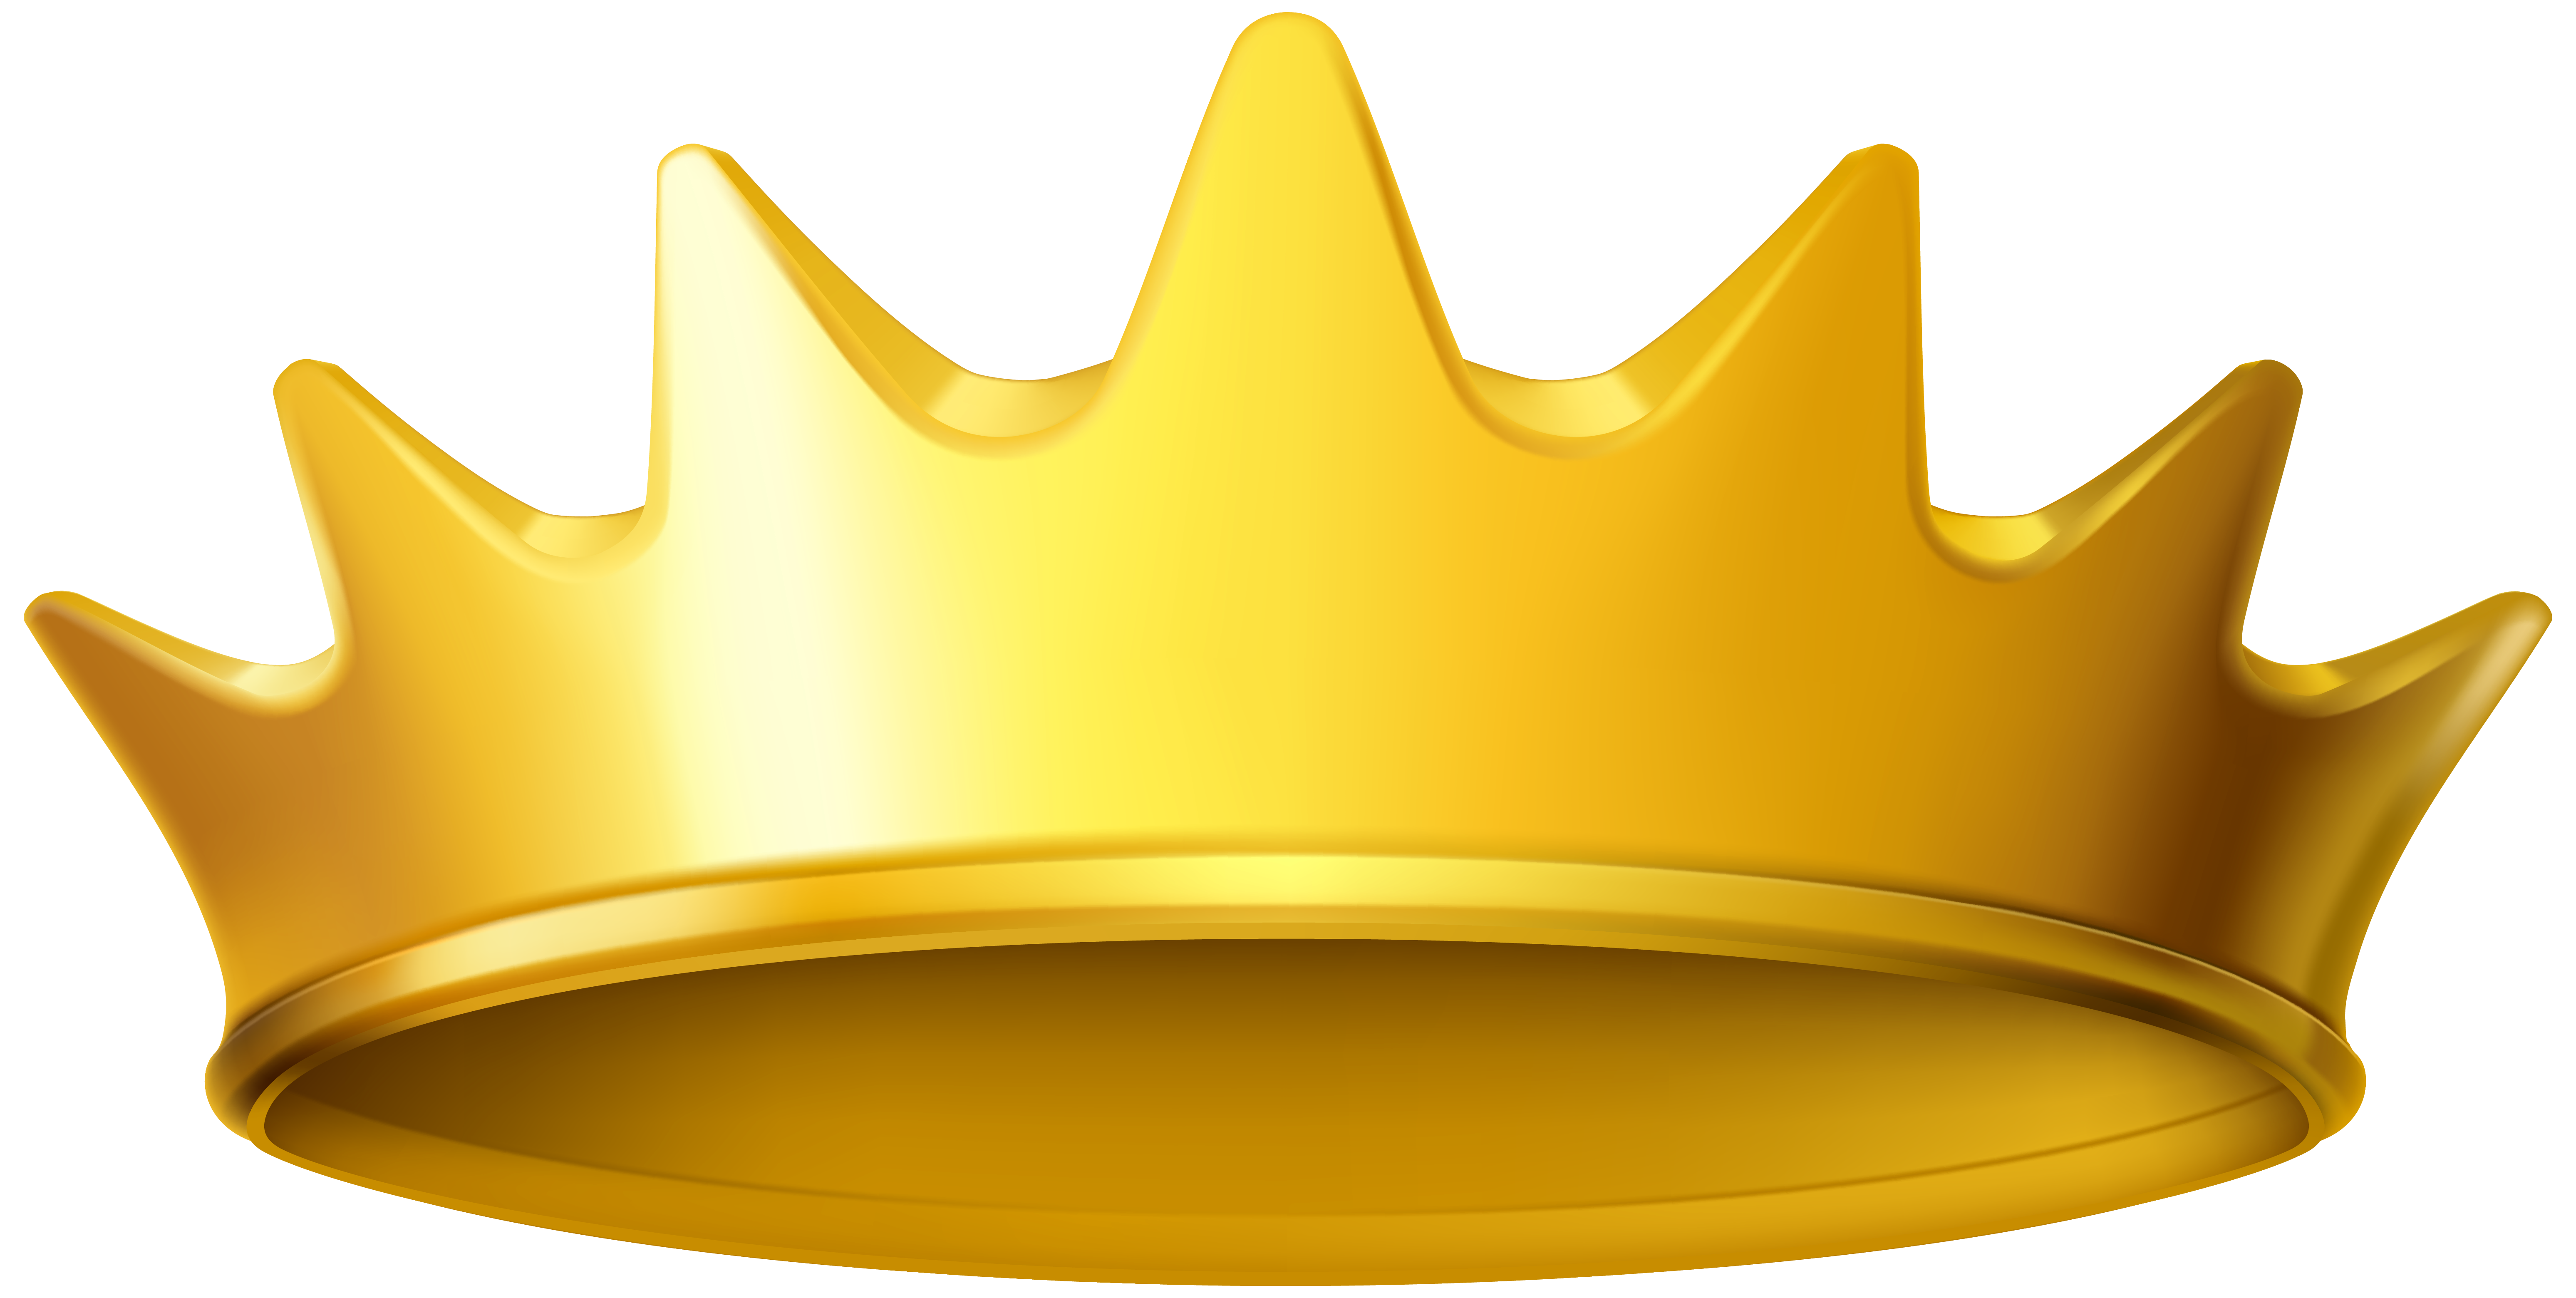 Crown clipart.